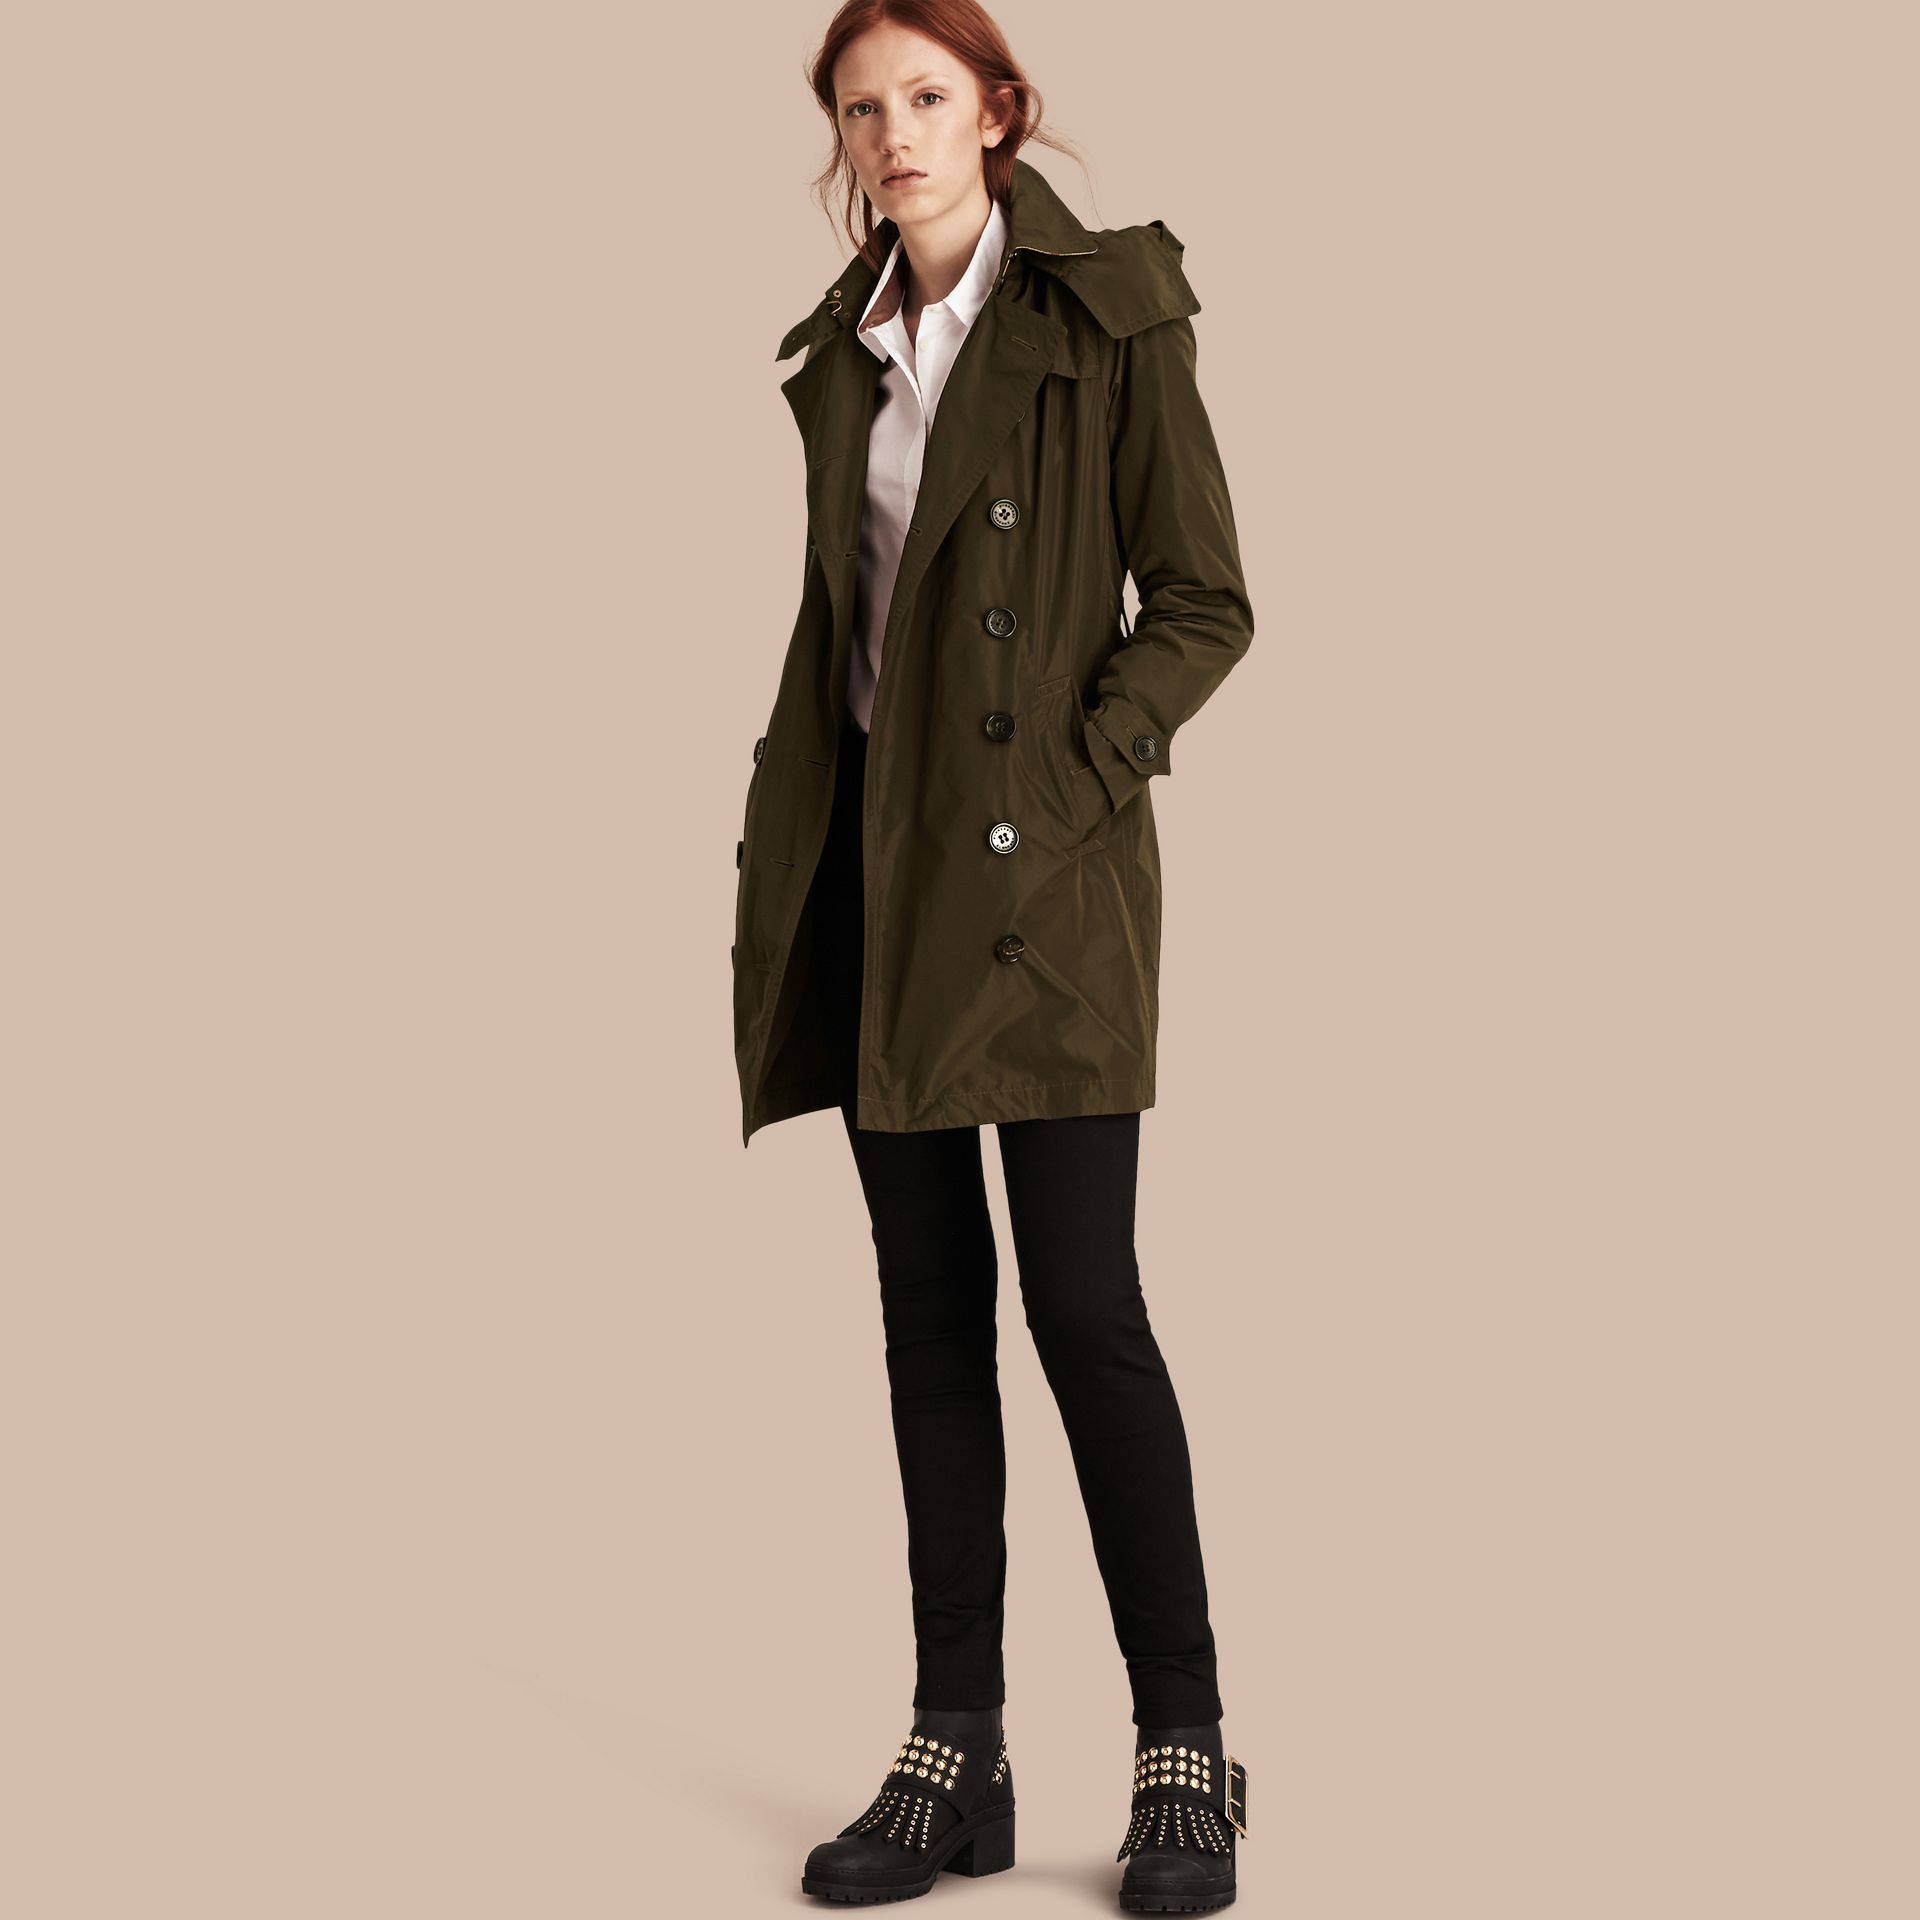 Dark olive Taffeta Trench Coat with Detachable Hood Dark Olive - immagine della galleria 1